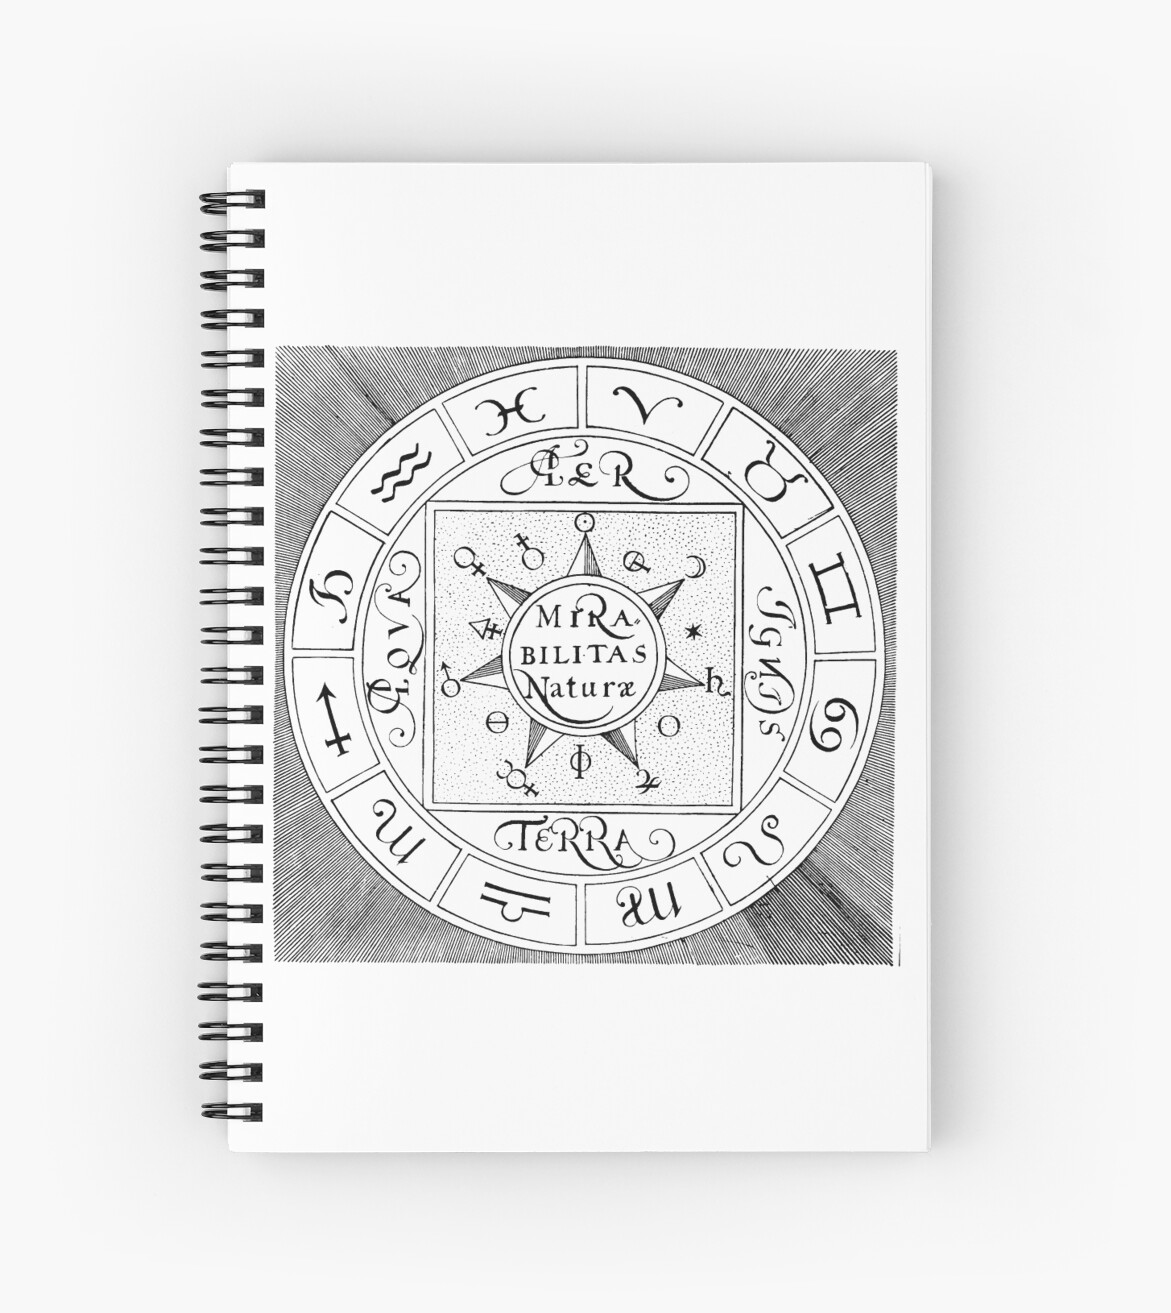 Medieval Alchemy Symbols Spiral Notebooks By Pixelchicken Redbubble